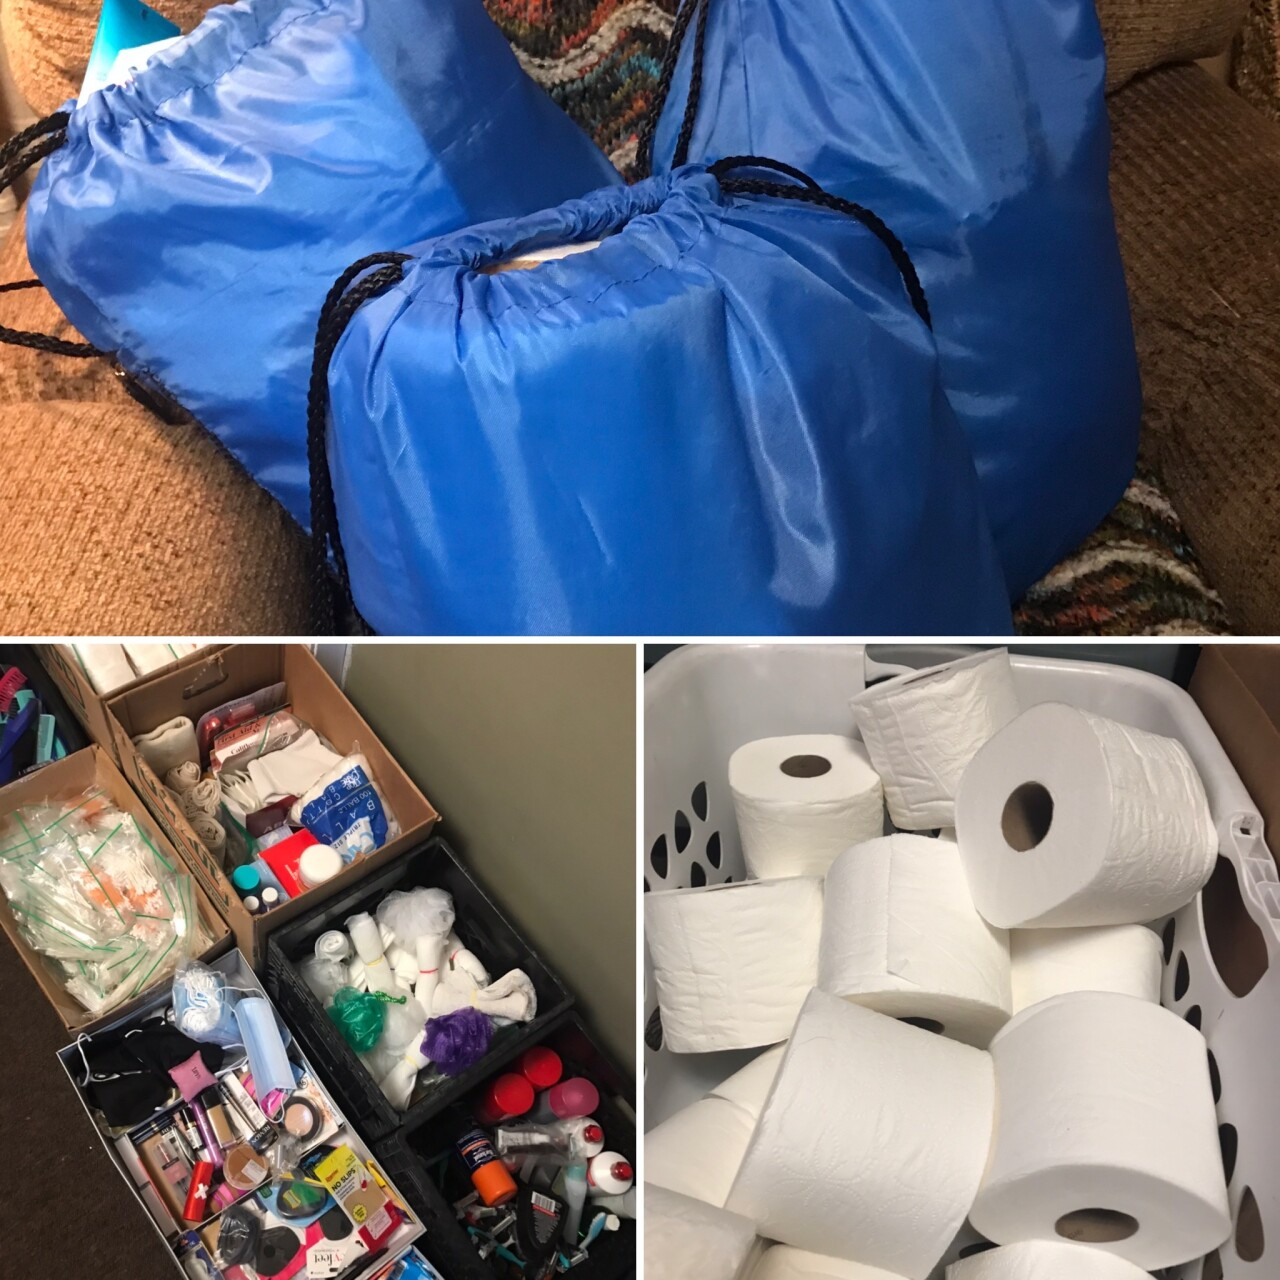 After Turner makes her big clothing donation, she fills up 'Blessings Bags' to handout to the homeless.